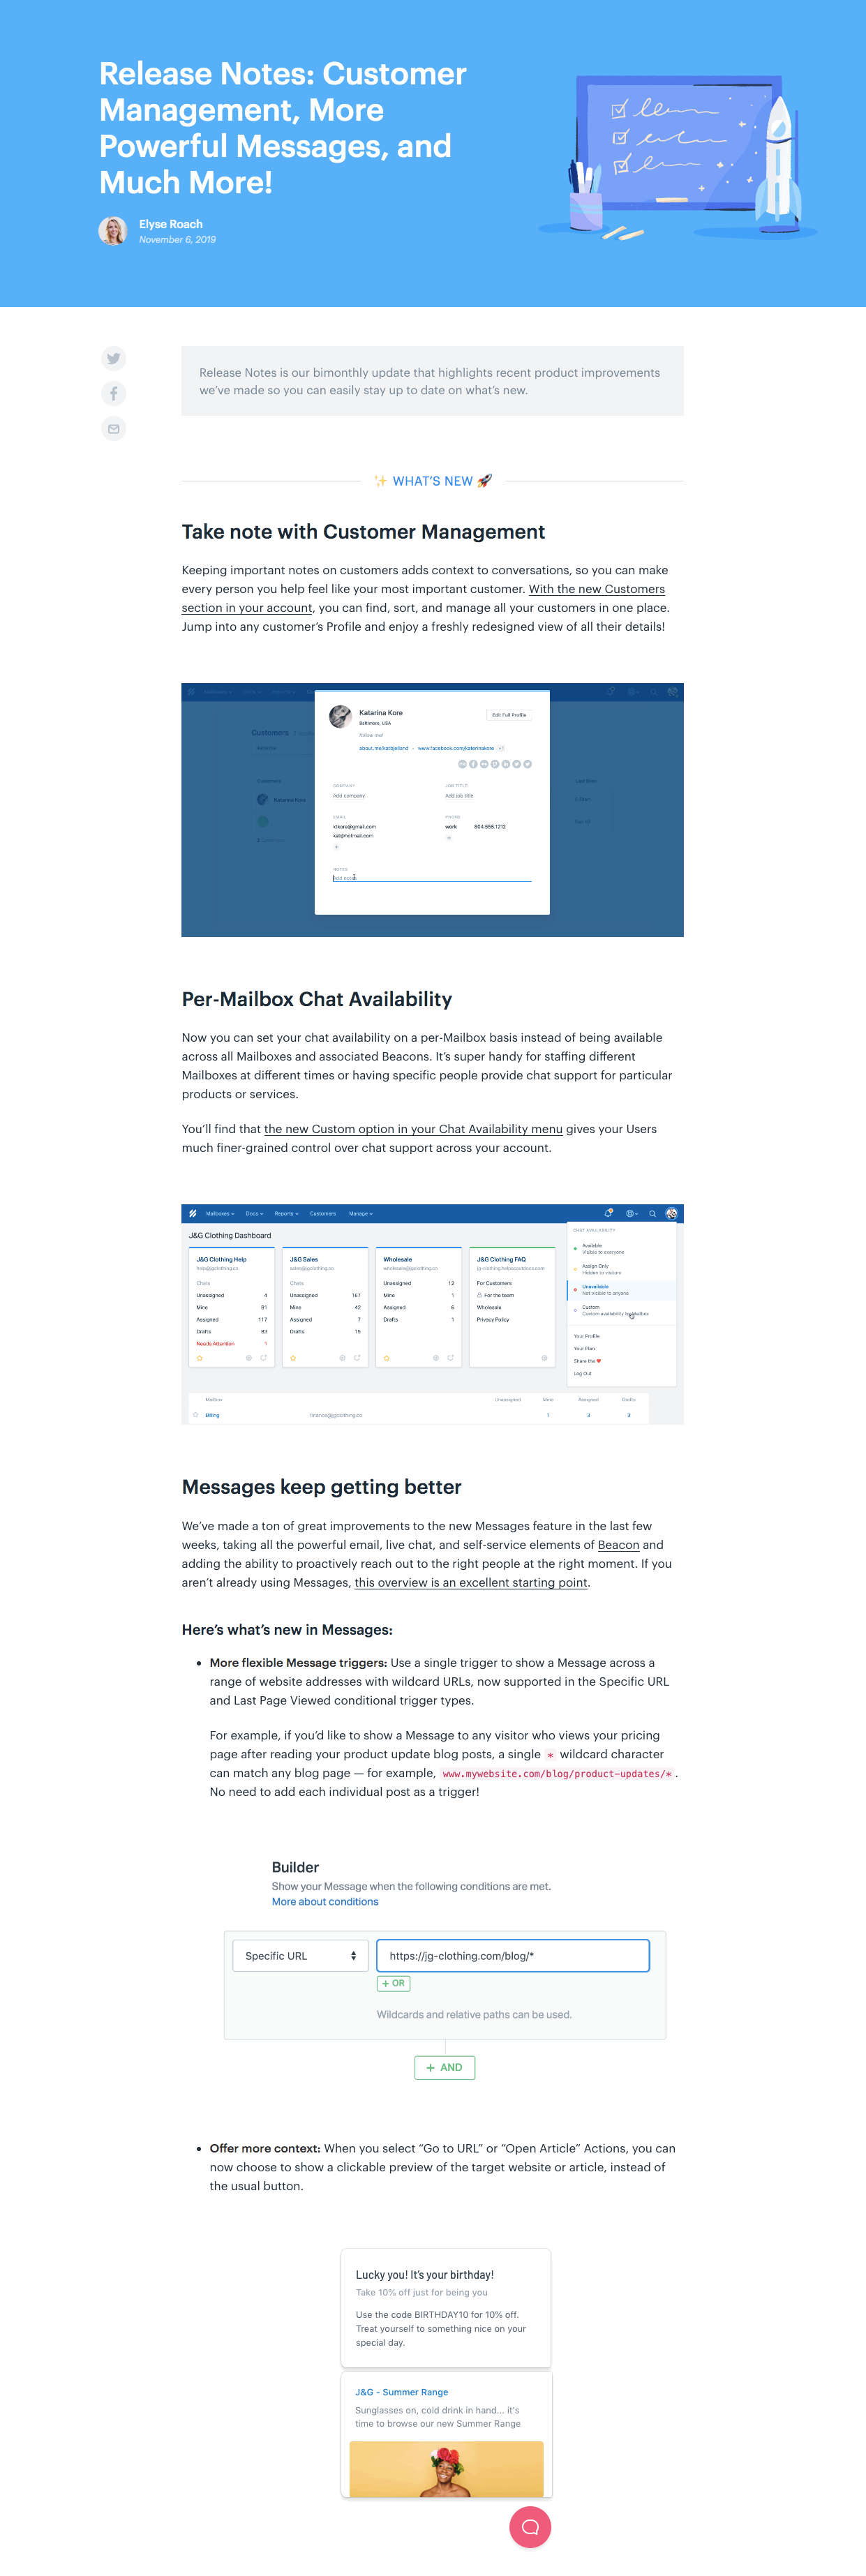 product release notes monthly roundup example from help scout's blog